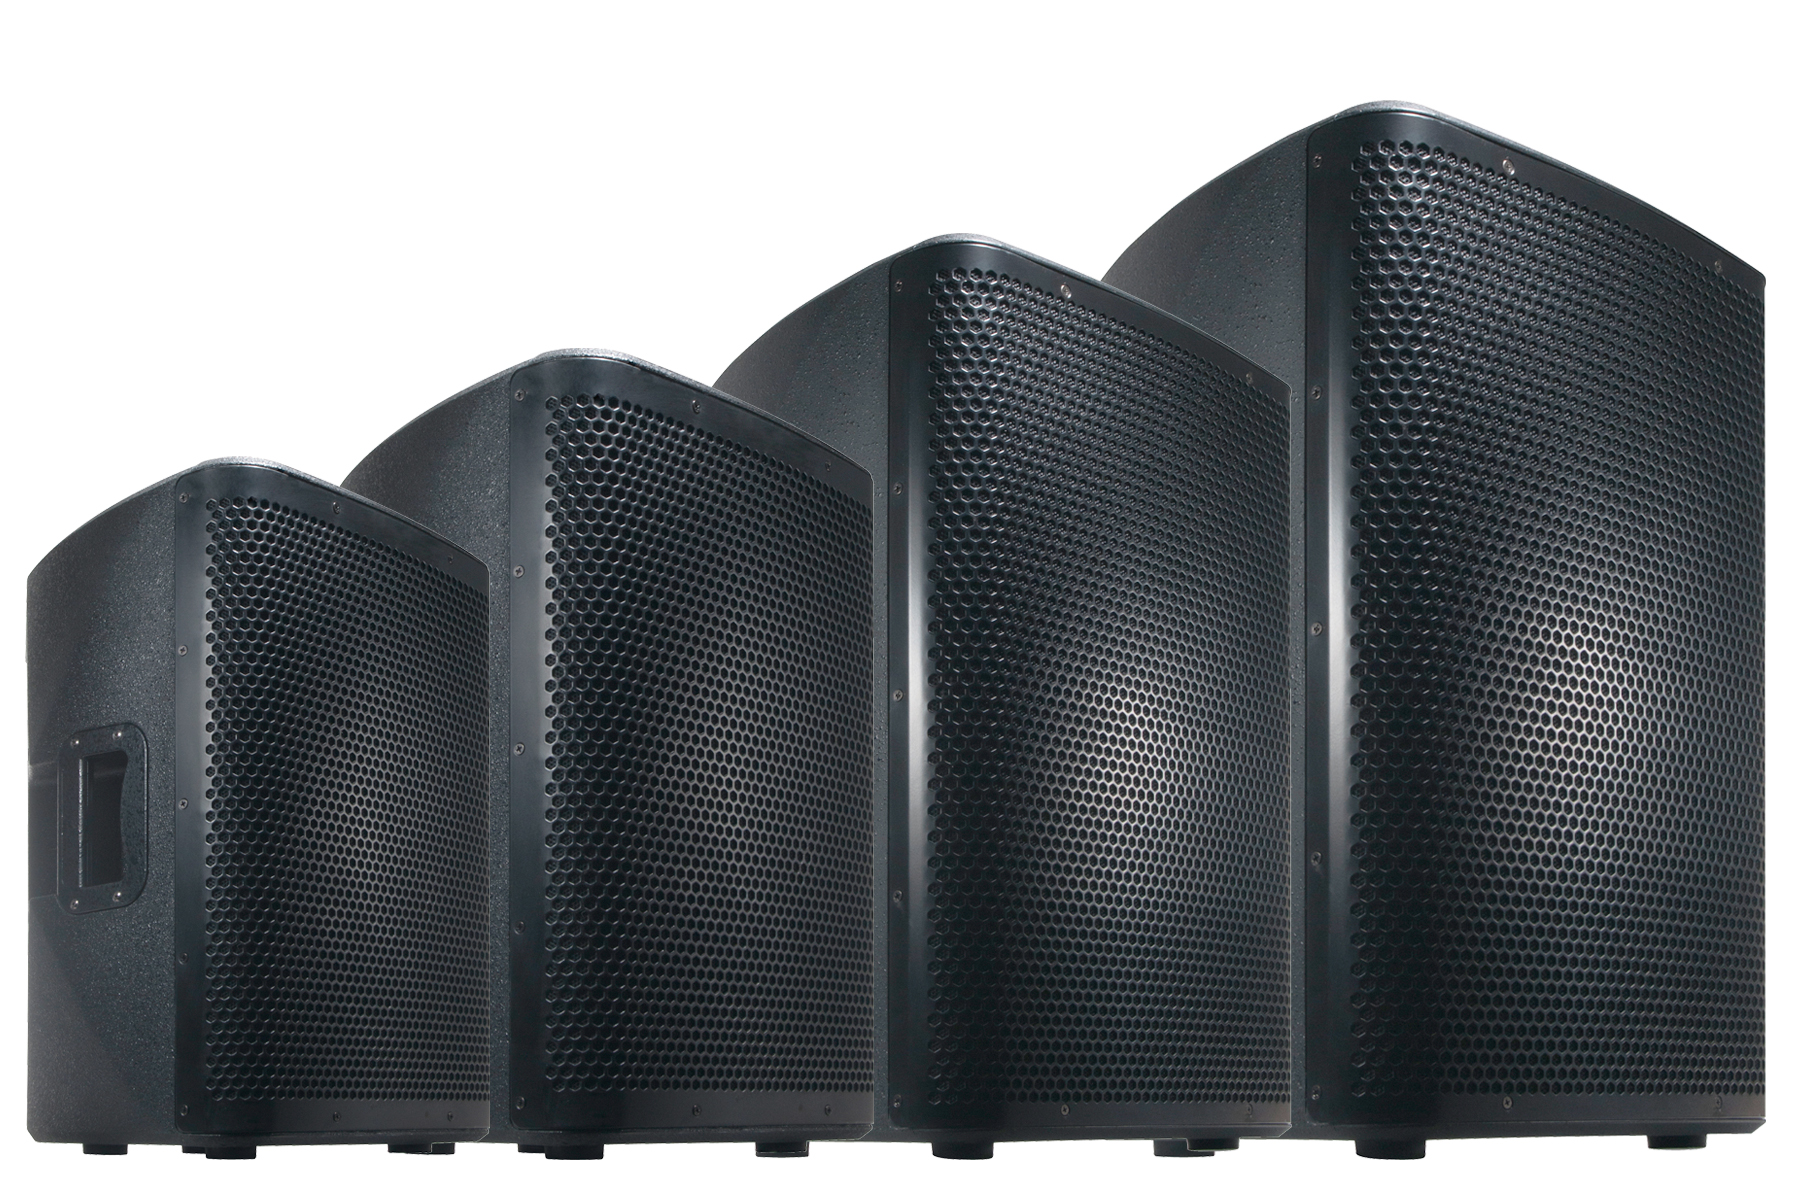 American Audio is launching a new line of speakers at NAMM: The CPX Series.